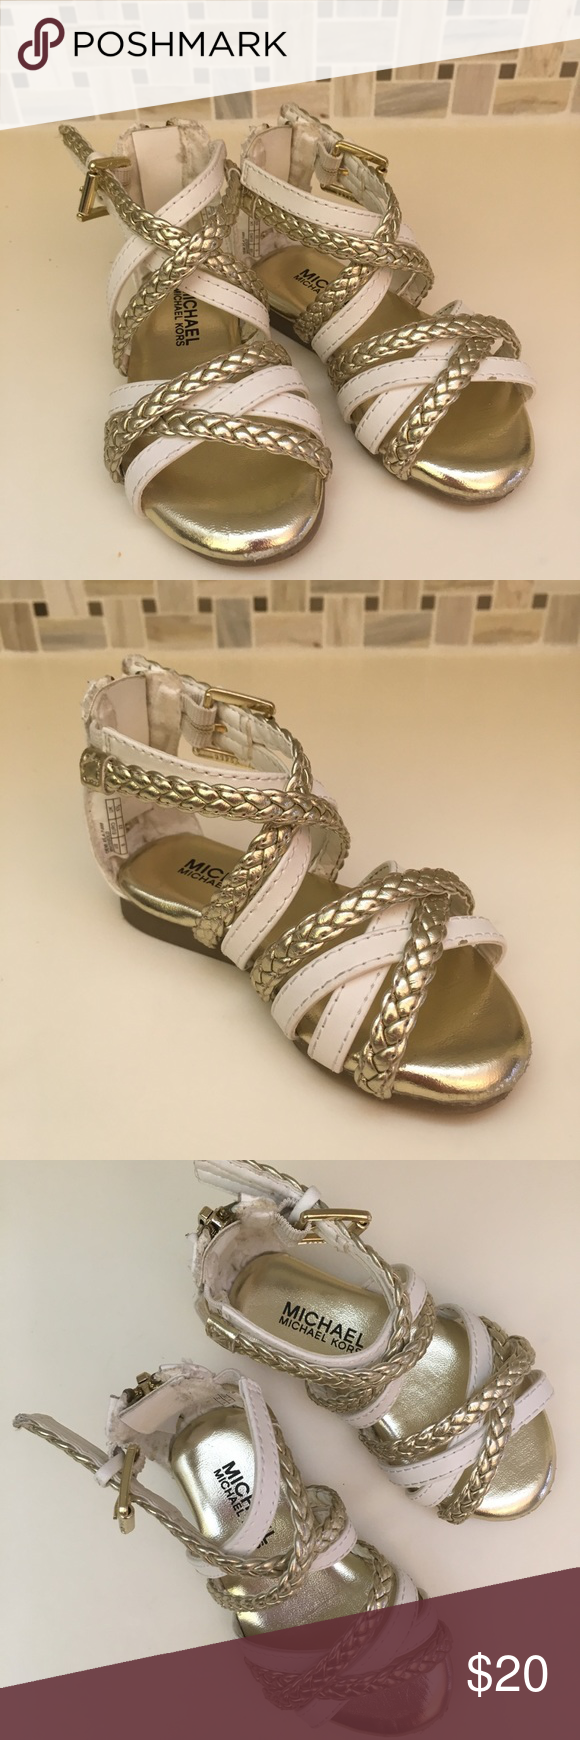 72ba72cff3 Girls MK Gladiator Sandals Adorable and barely worn! White and gold with  back zipper. Toddler size 6. Michael Kors Shoes Baby & Walker